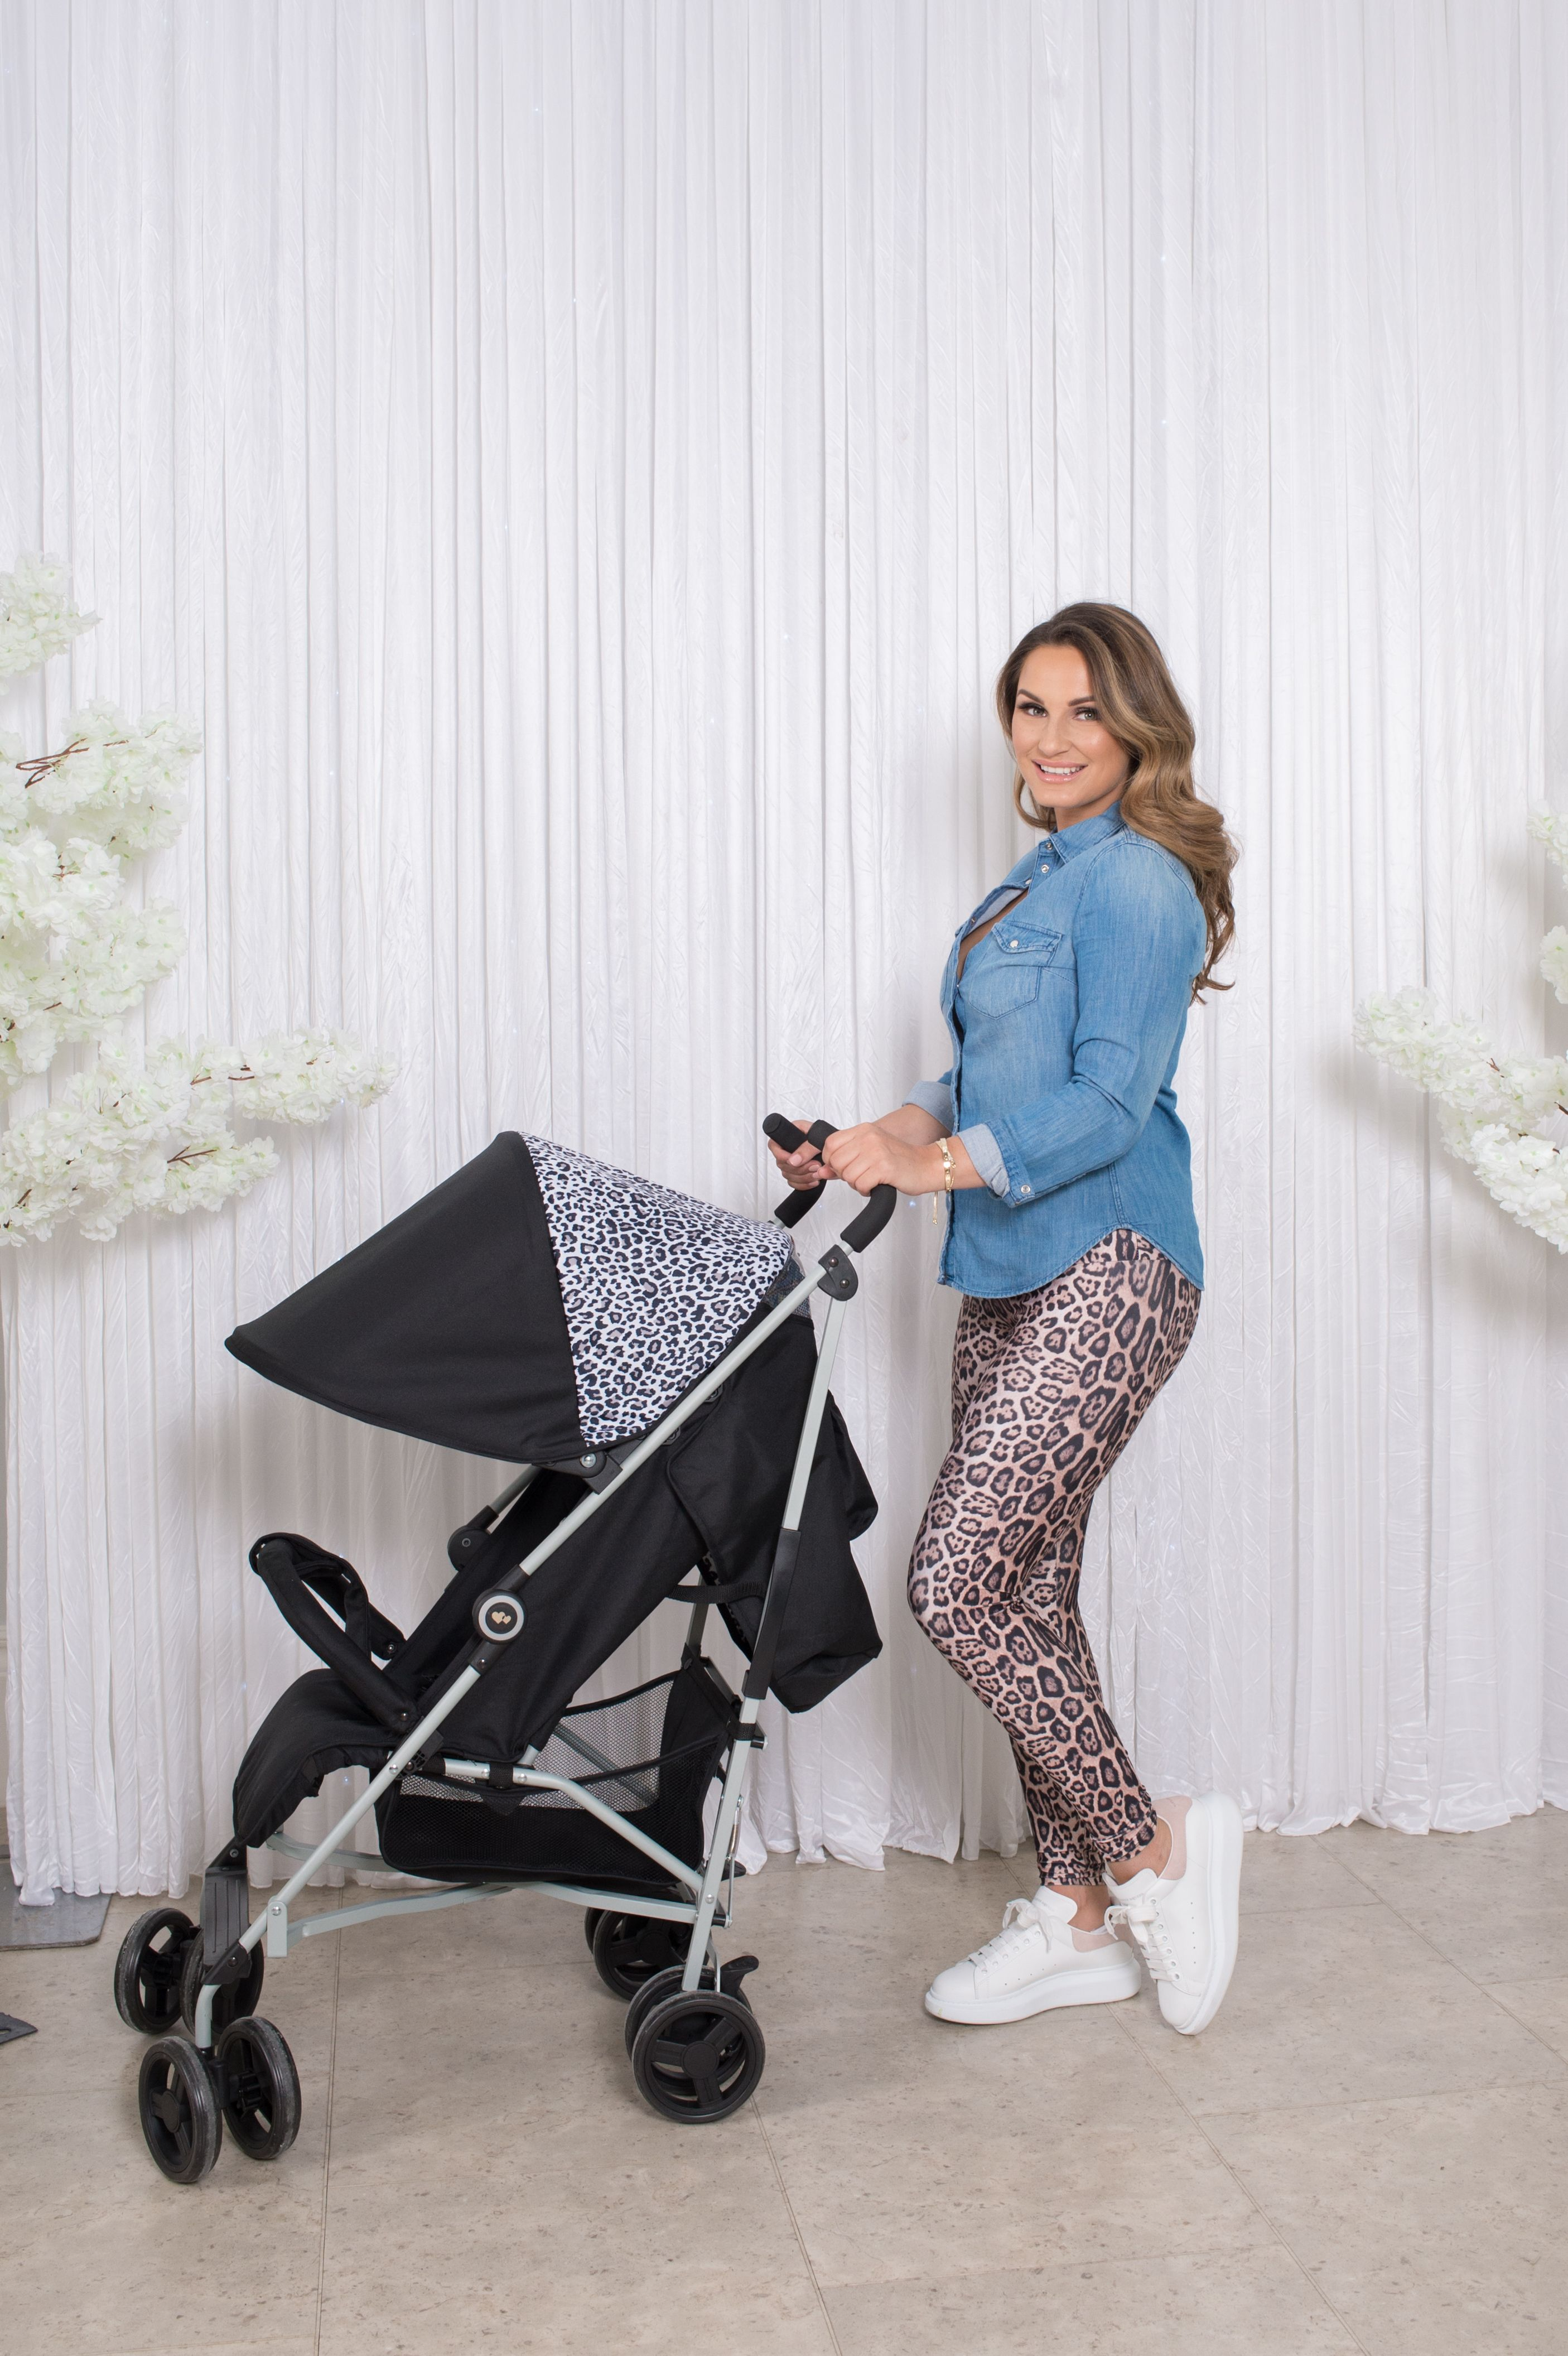 340fbae43970 Meet the Dreamiie by Samantha Faiers Black Leopard Stroller - great value,  sporty, lightweight buggies that offer superb manoeuvrability and easy  handling.